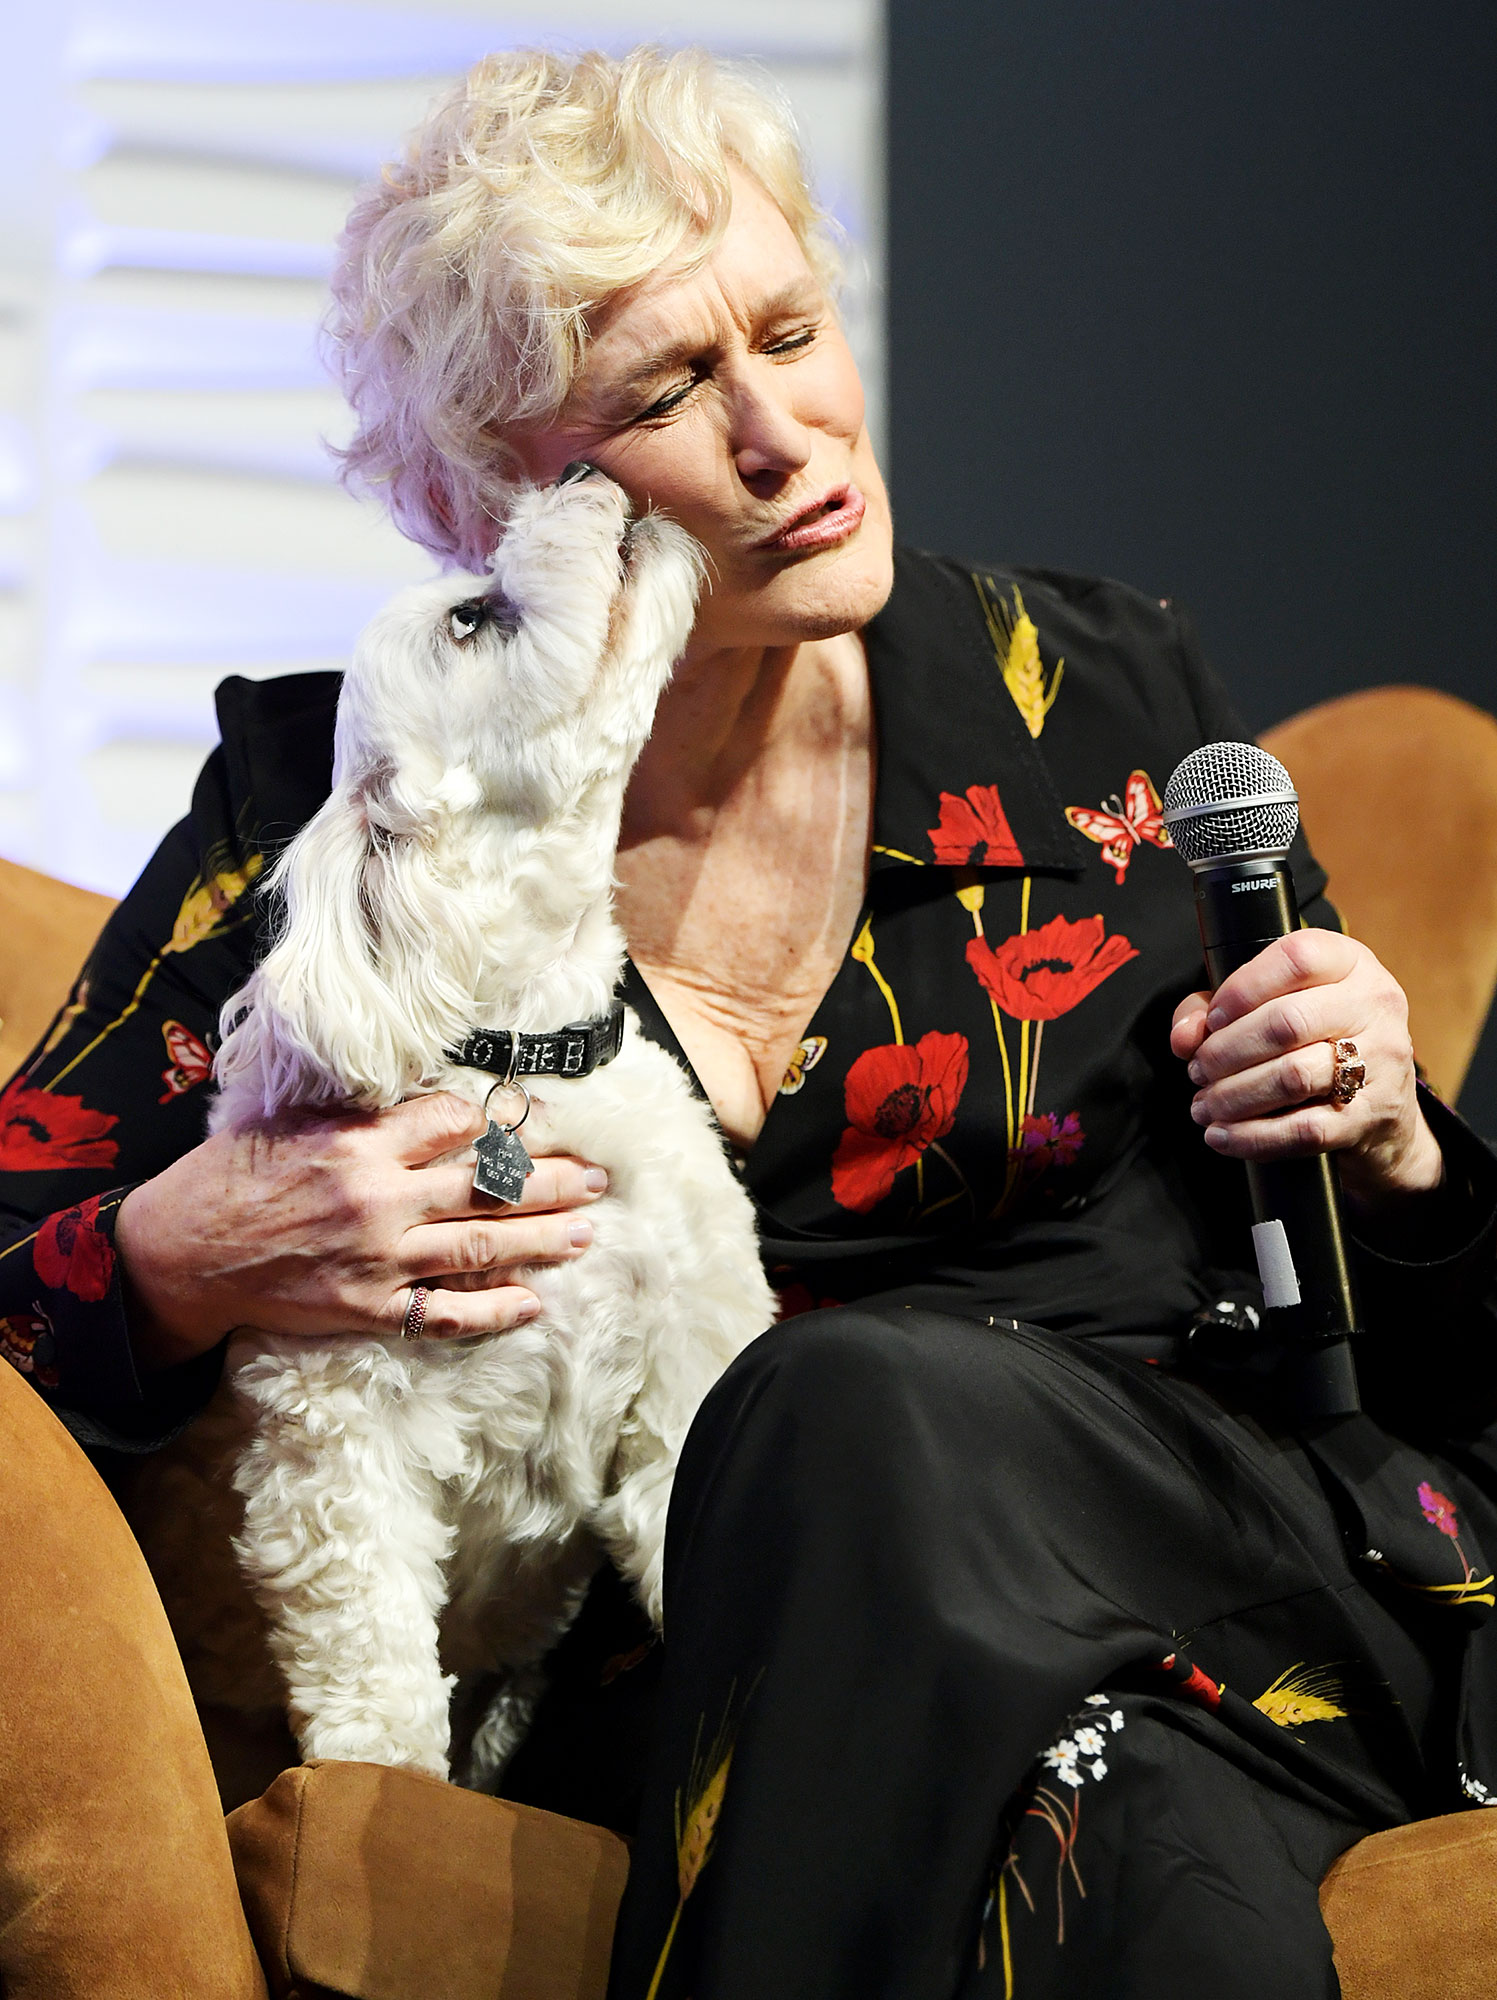 Glenn Close Sir Pippin of Beanfield Dog Oscars Rituals Grandmothers Ring - Glenn Close speaks onstage with her dog Sir Pippin of Beanfield at the Maltin Modern Master Award Honoring Glenn Close during the 34th Santa Barbara International Film Festival at Arlington Theatre on February 2, 2019.